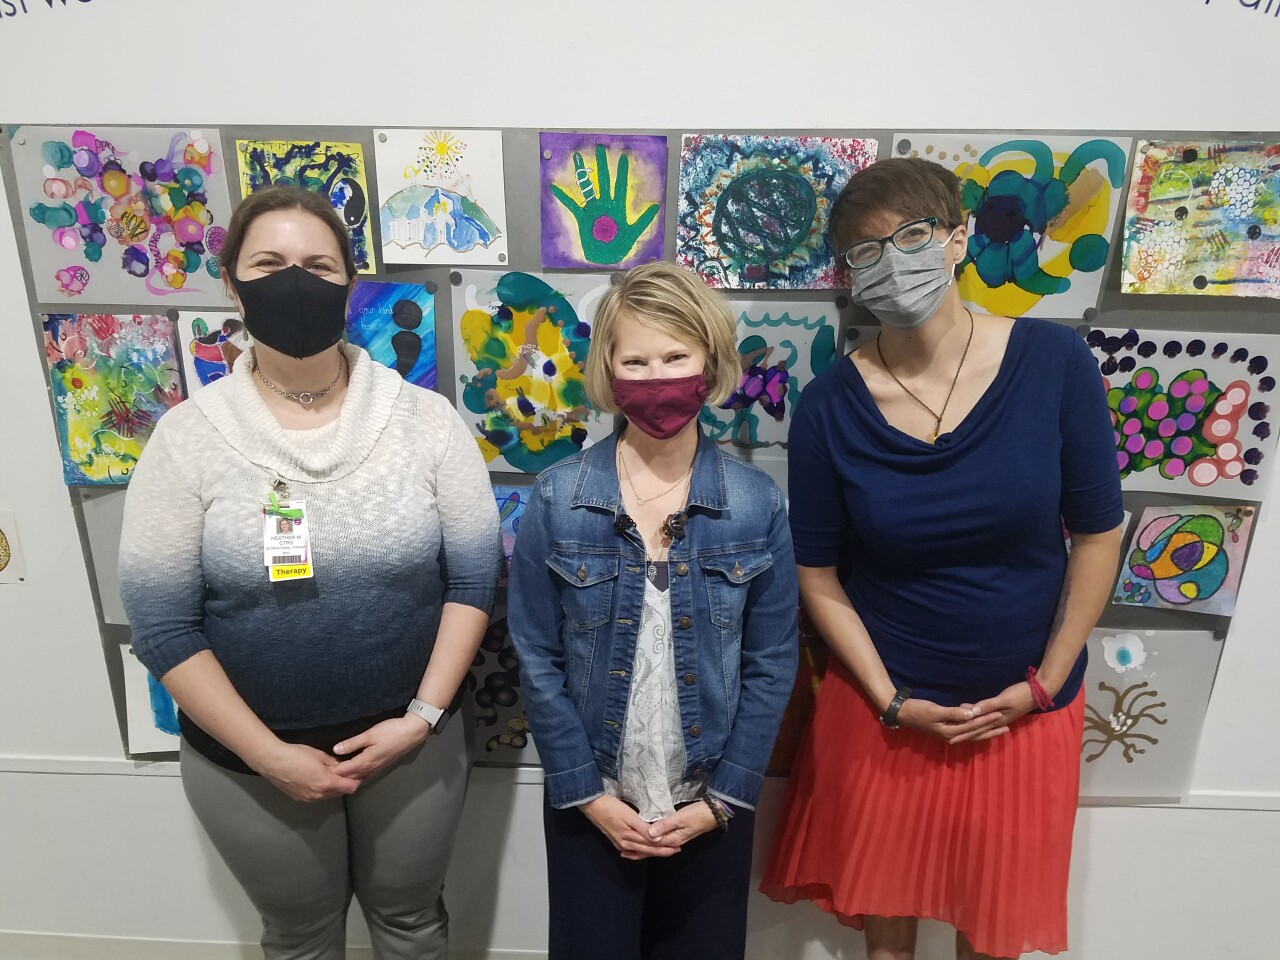 'Healing Art' exhibition at the Holter Museum of Art